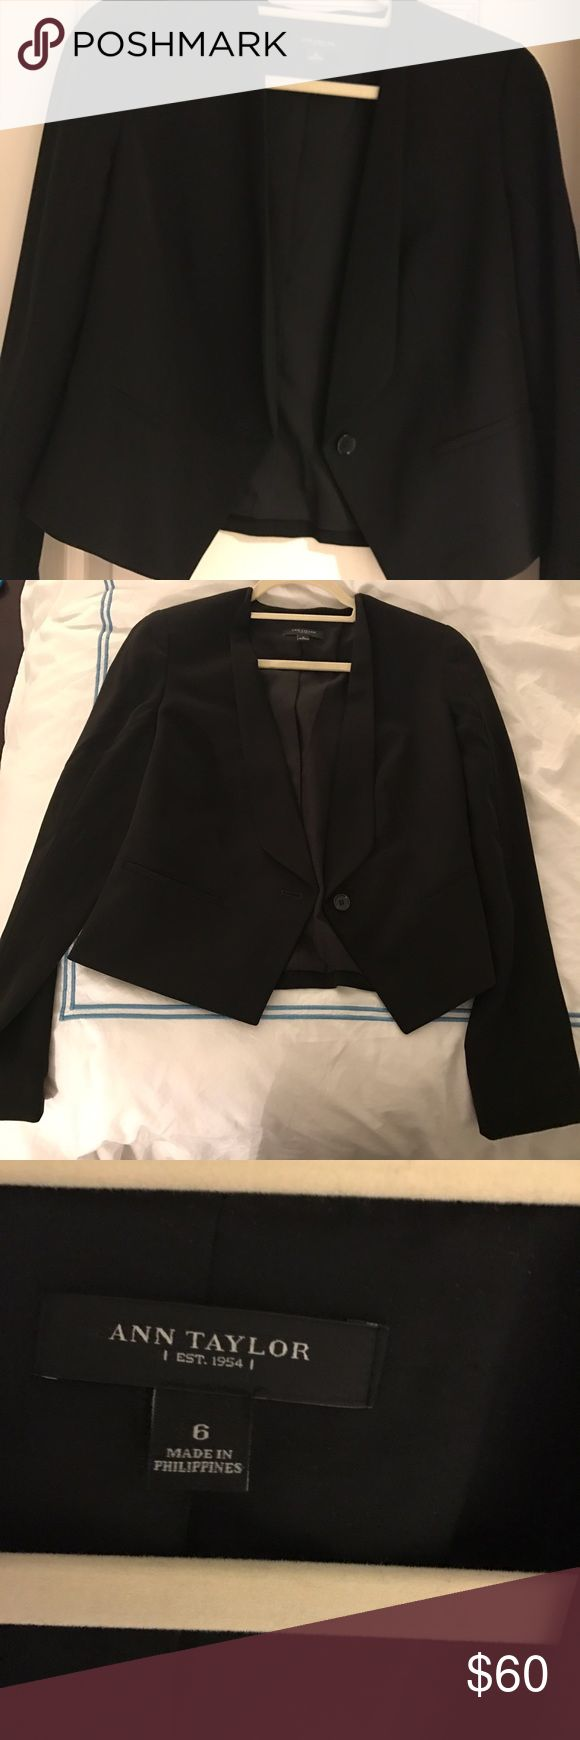 Ann Taylor tuxedo jacket Black tuxedo jacket/blazer from Ann Taylor worn at a maternity fashion photo shoot- no button closure, draping lapel. Worn with a white shirt and jeans for a casual office look. Ann Taylor Jackets & Coats Blazers